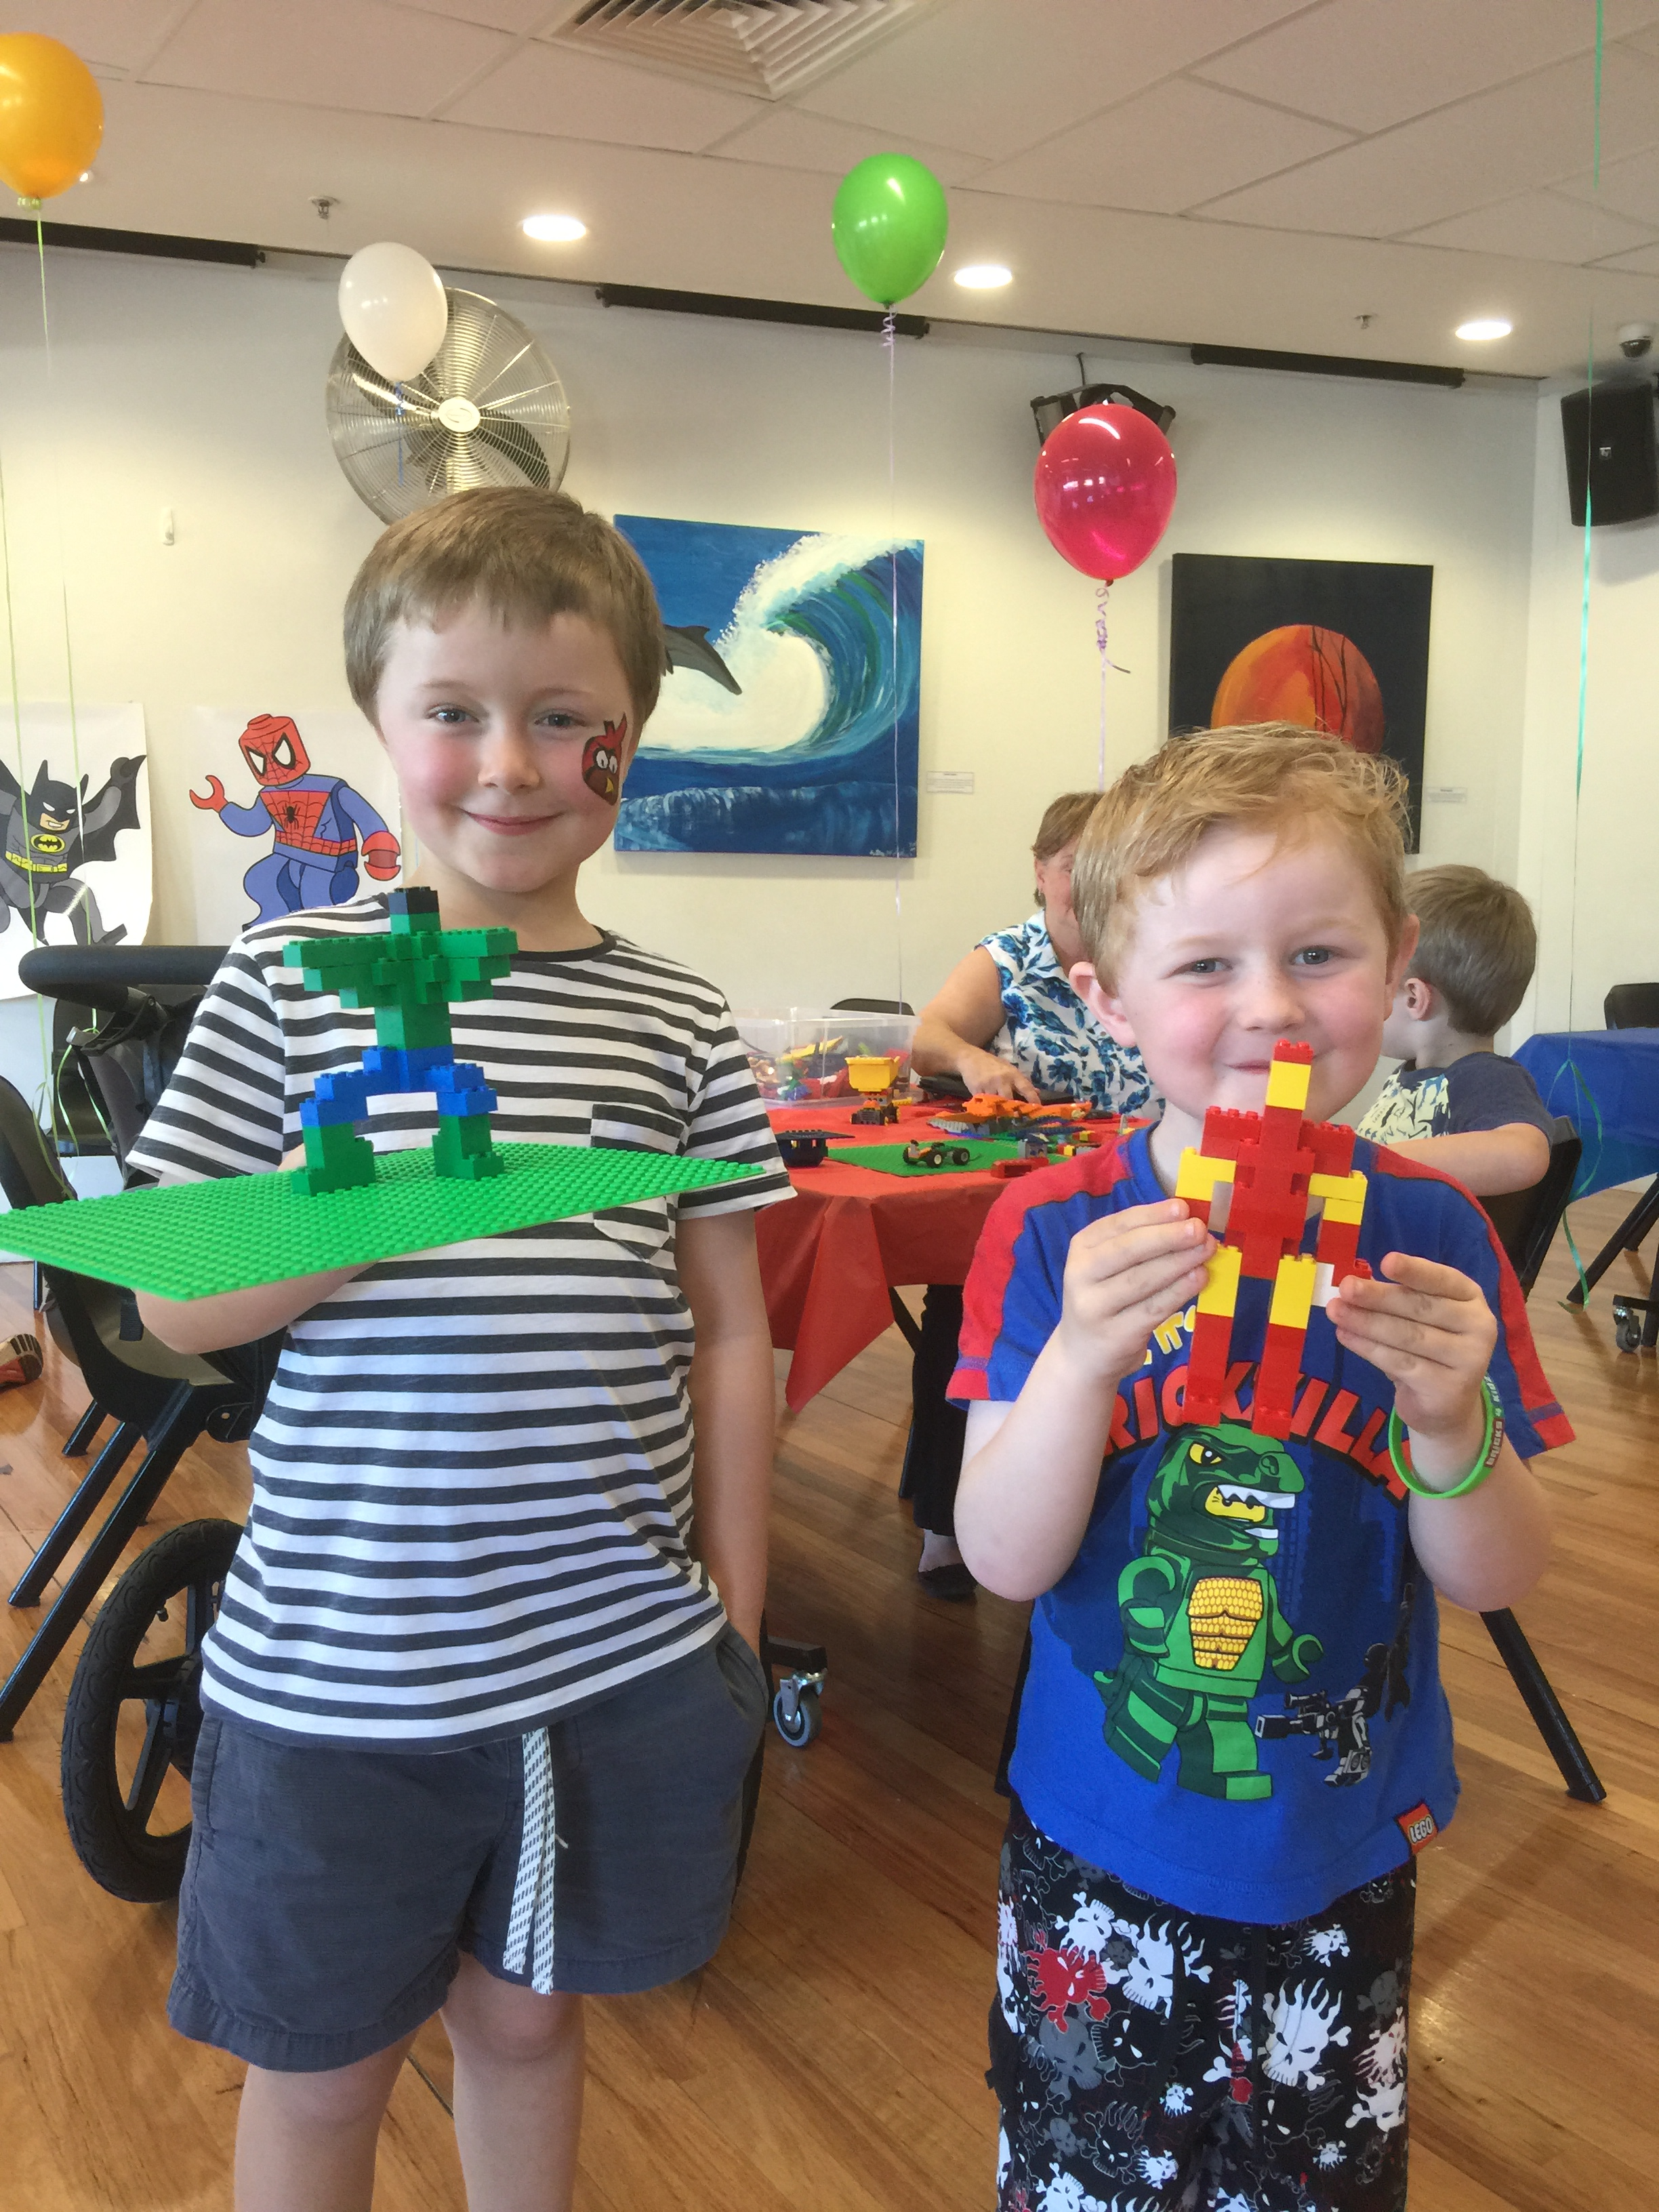 Fun with Lego at the Bricks 4 Kidz launch party